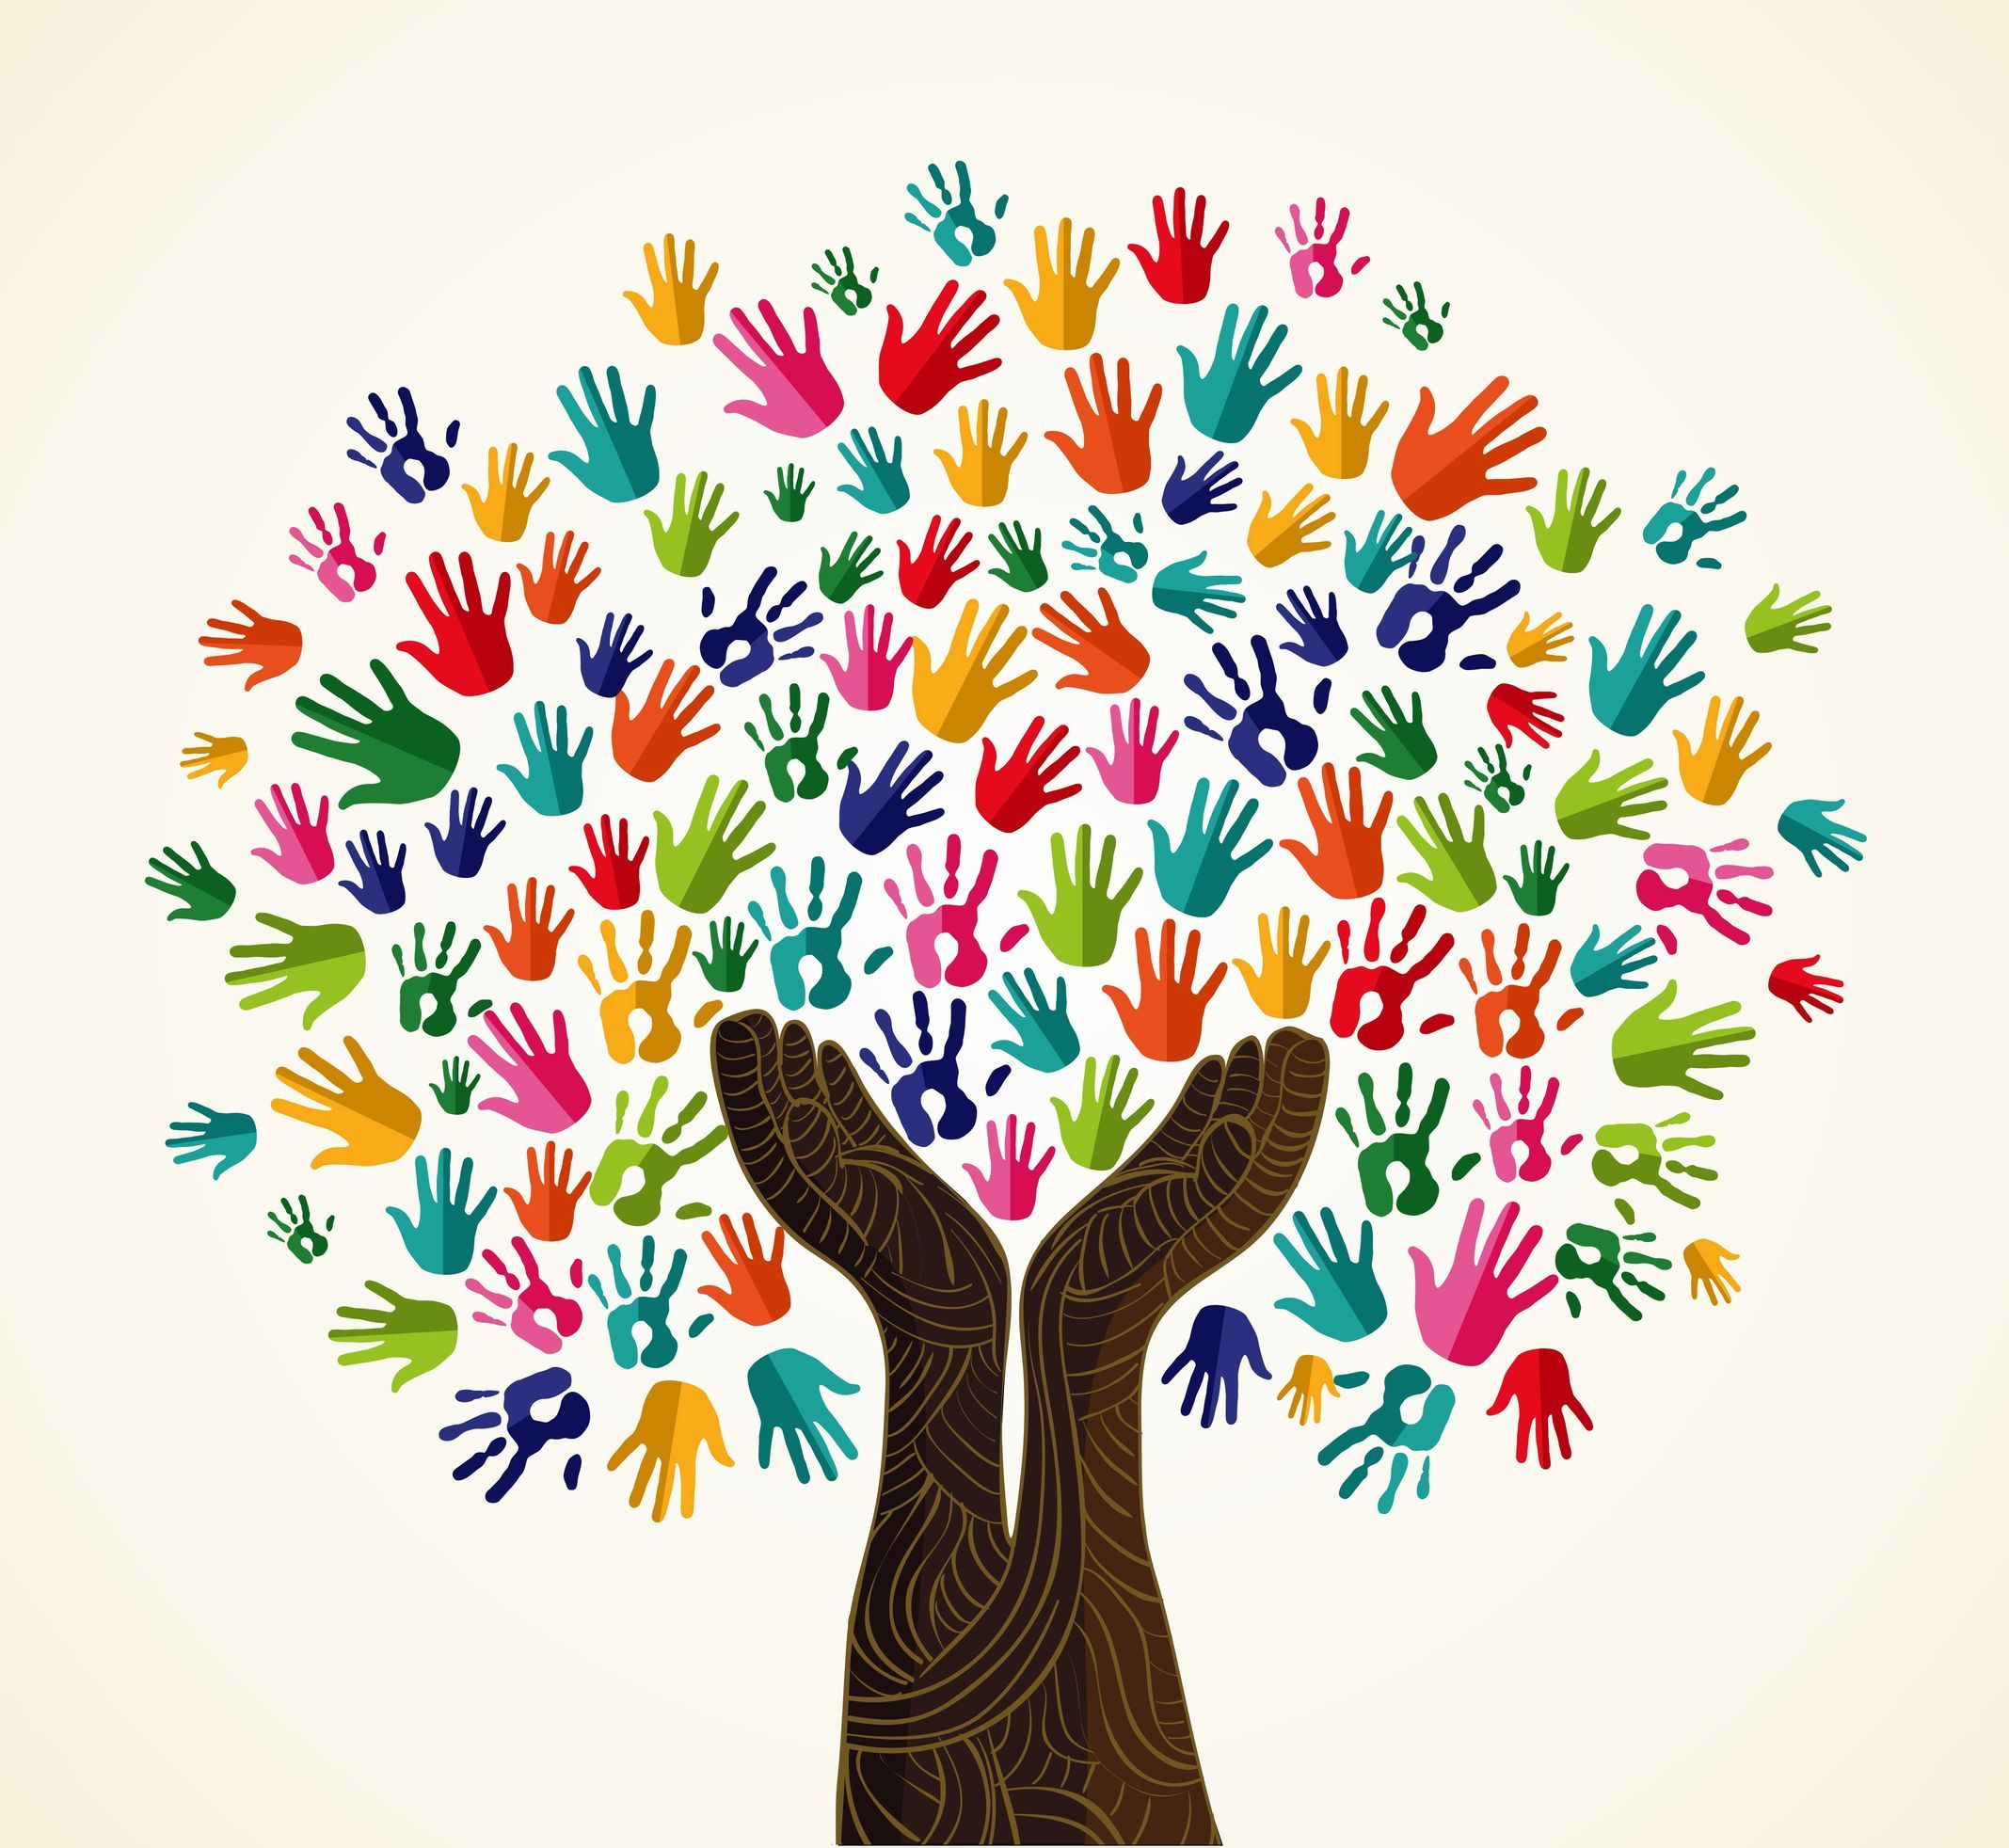 Non Profit Organizations How To Use Social Media Martin Luther King Art Martin Luther King Jr Crafts King Craft